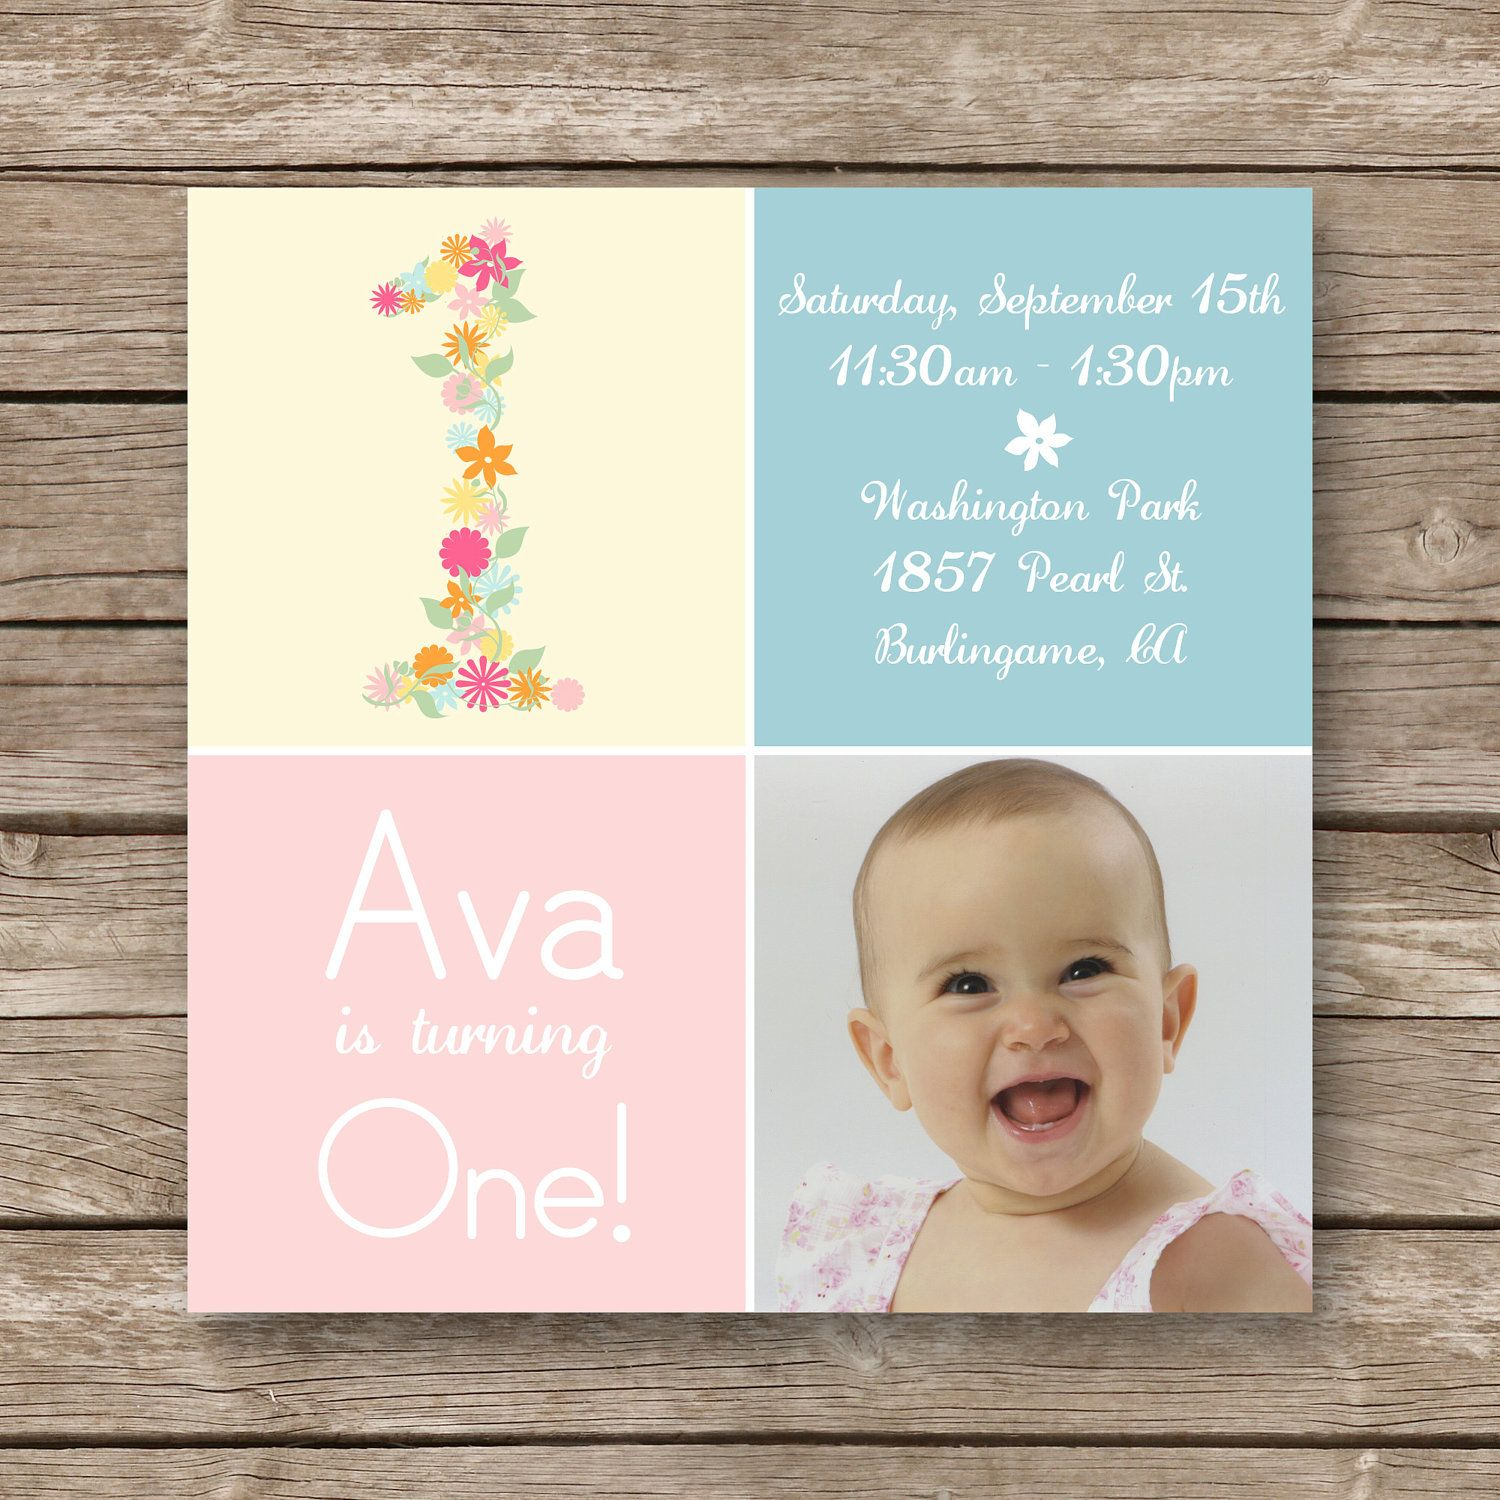 17 Best images about Invites on Pinterest | Birthday party ...